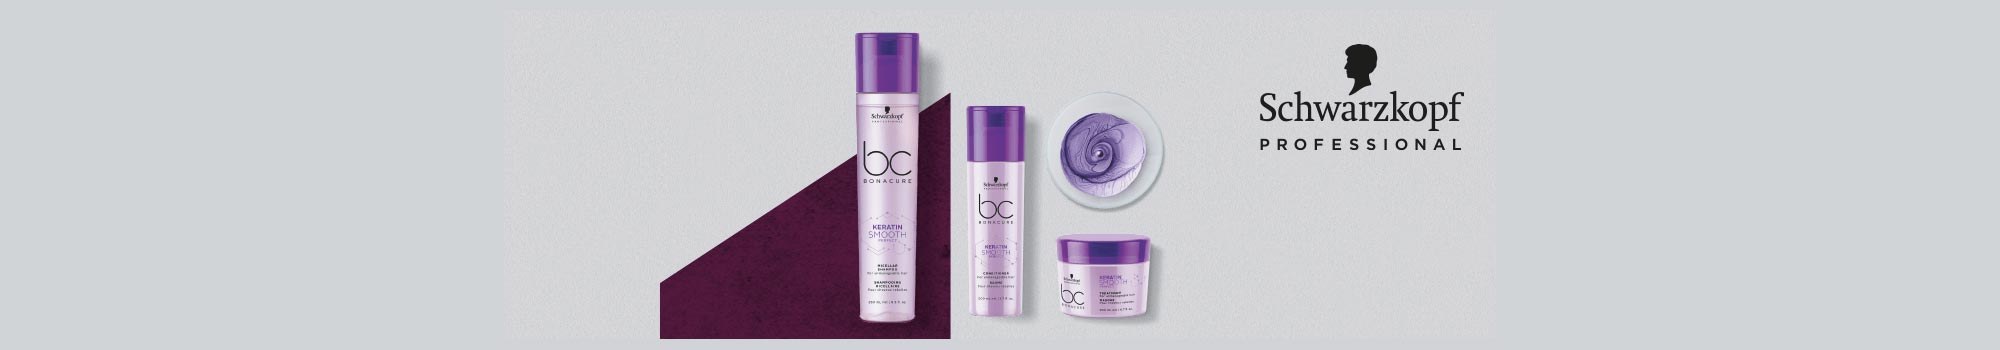 Keratin Smooth Perfect Schwarzkopf Professional